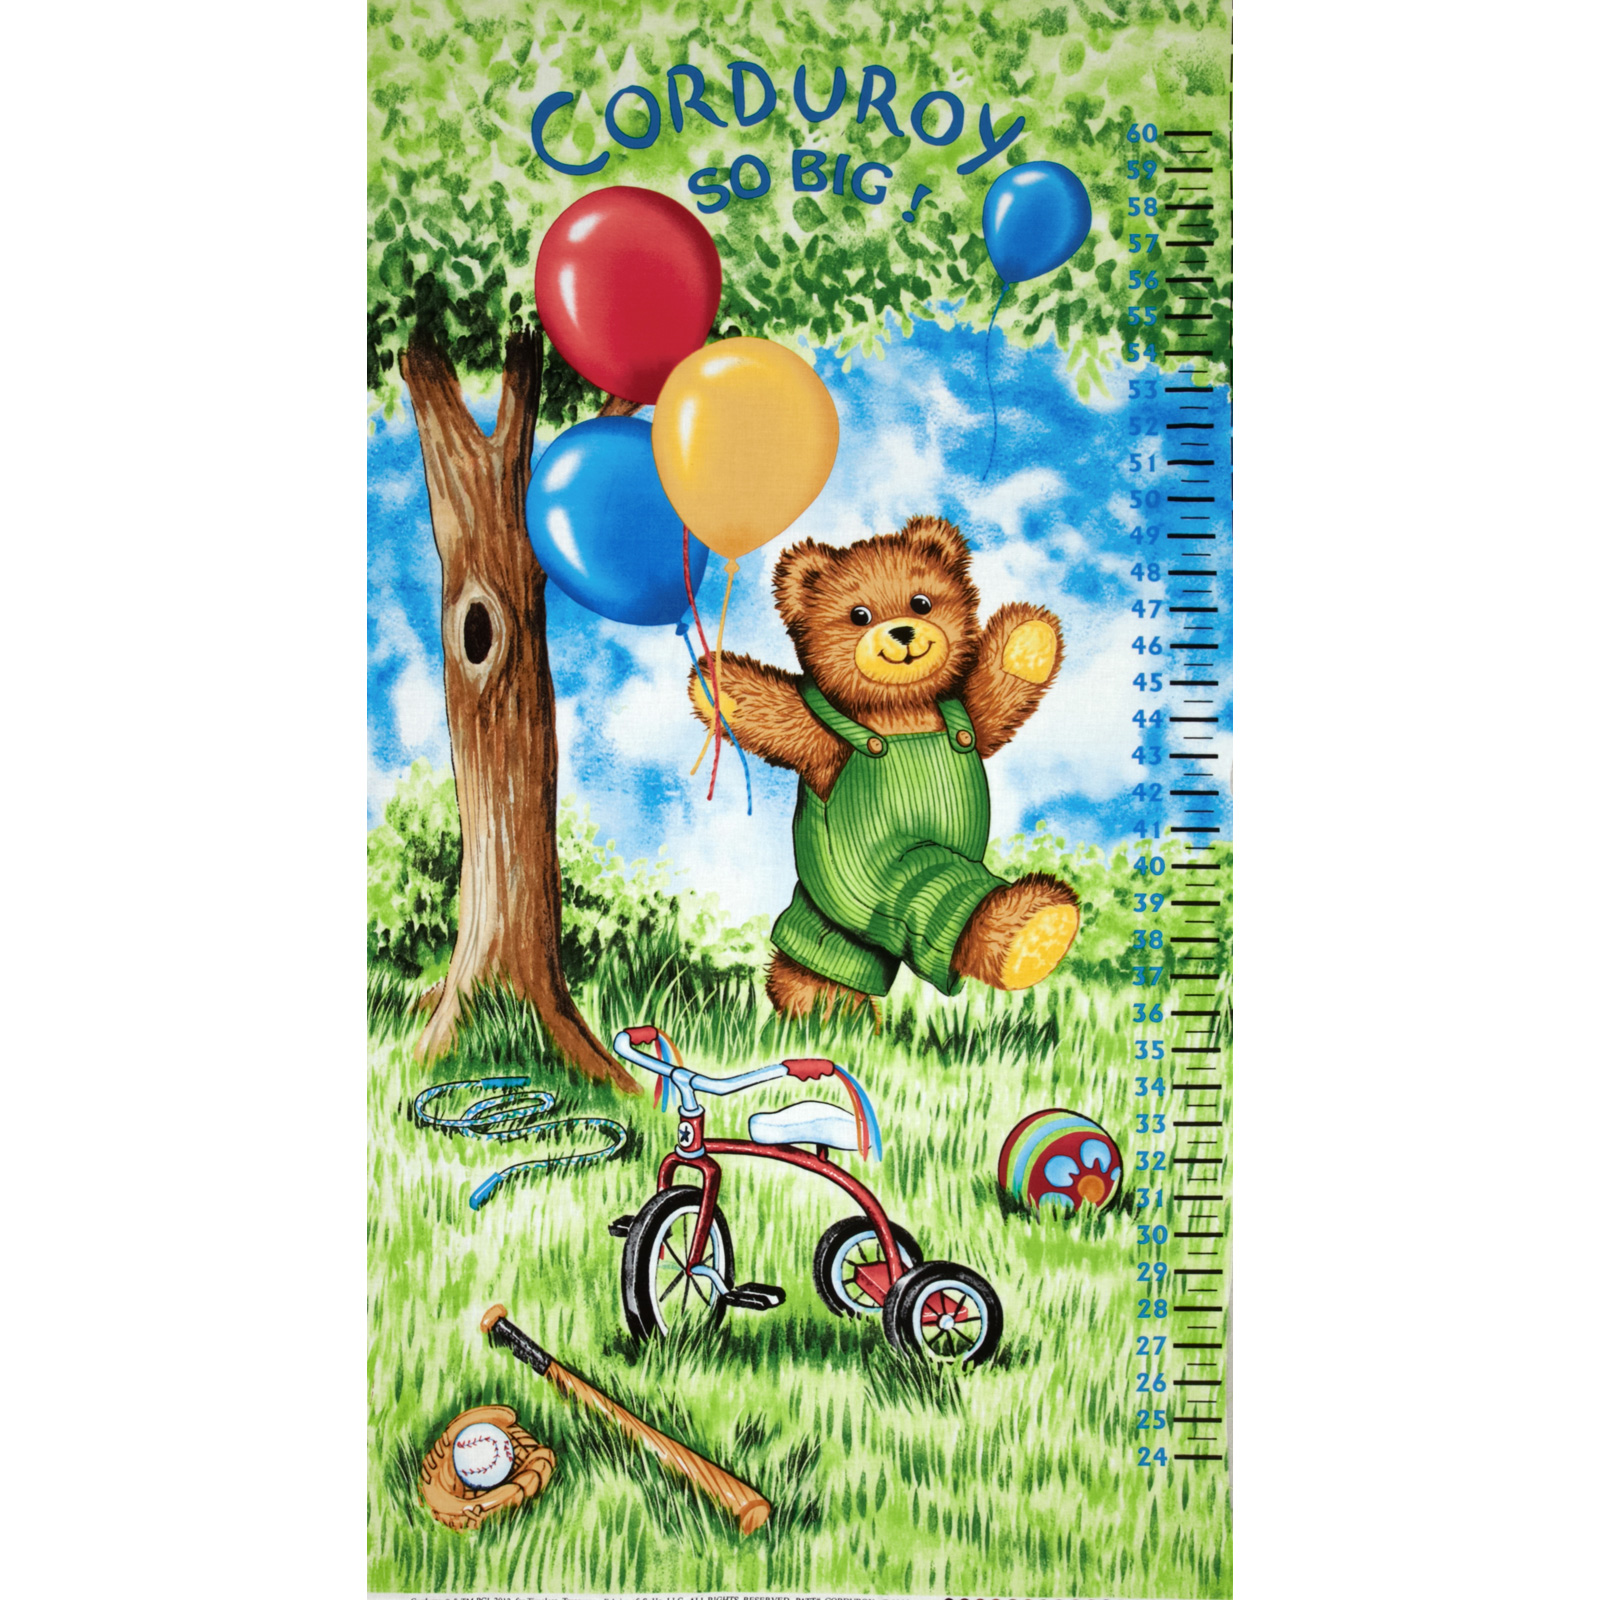 Corduroy Bear Panel Watch Me Grow Growth Chart